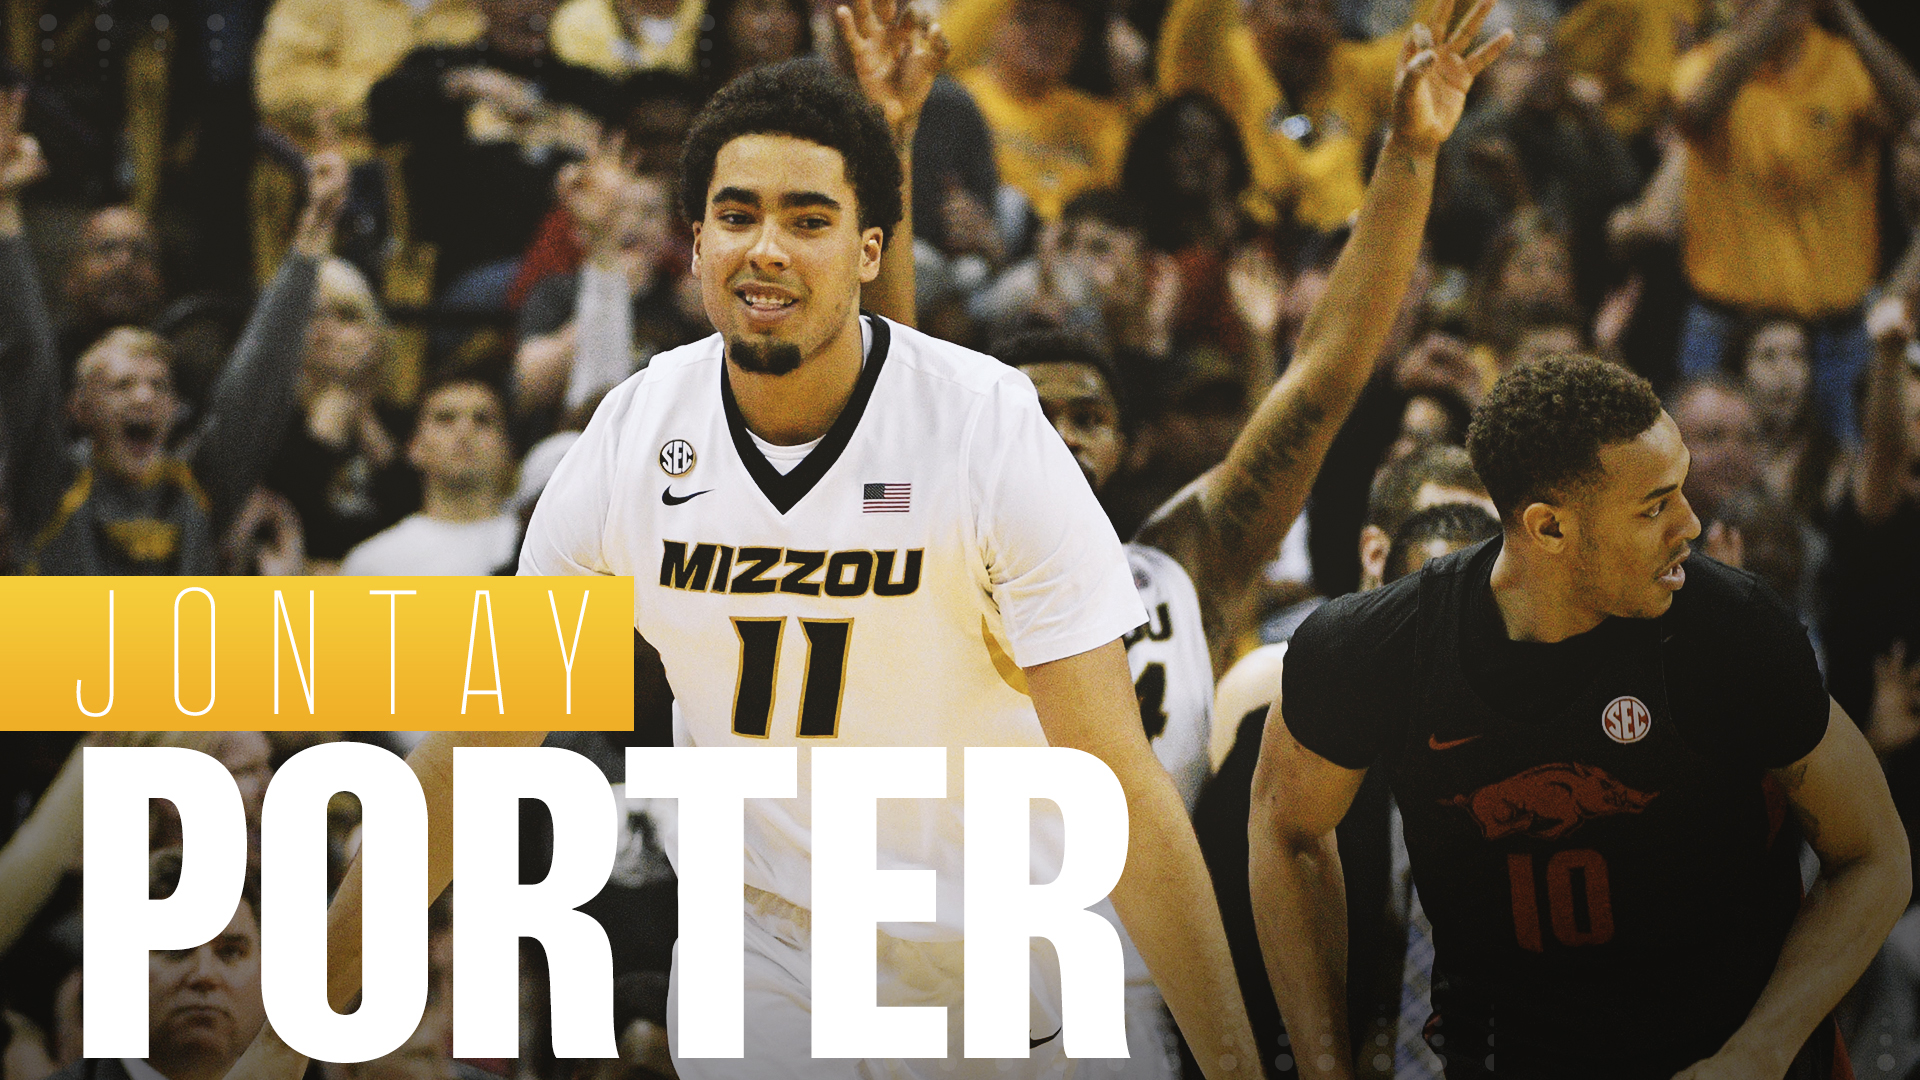 2019 NBA Draft Profile: Jontay Porter, Mizzou